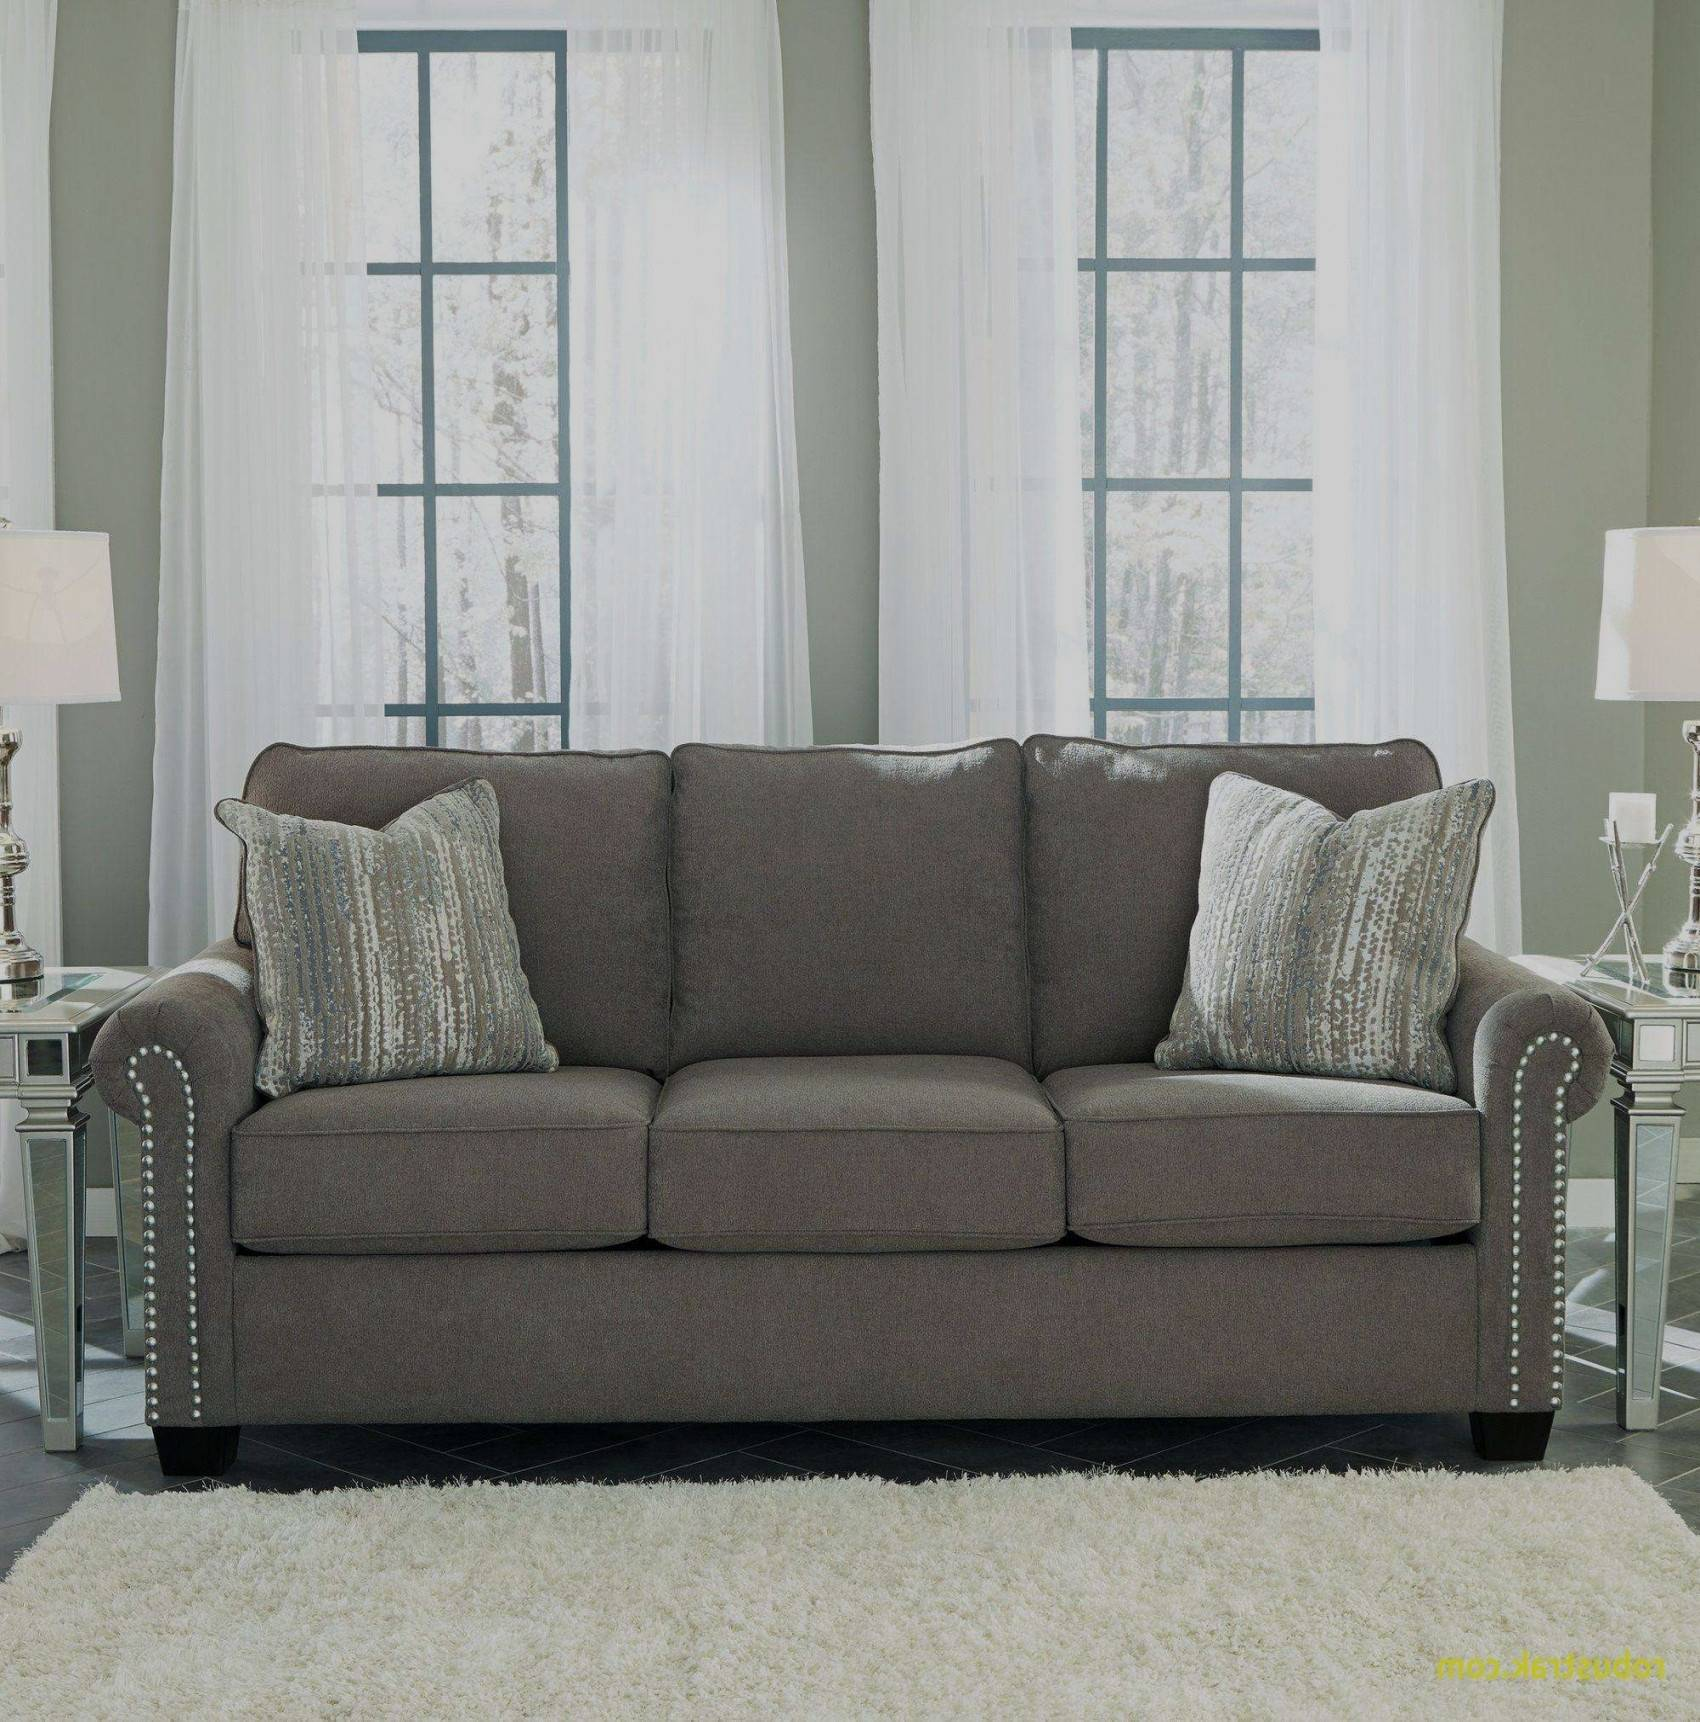 sectional sofa bed fresh l couch neu awesome living room coach with l sofa awesome hay couch